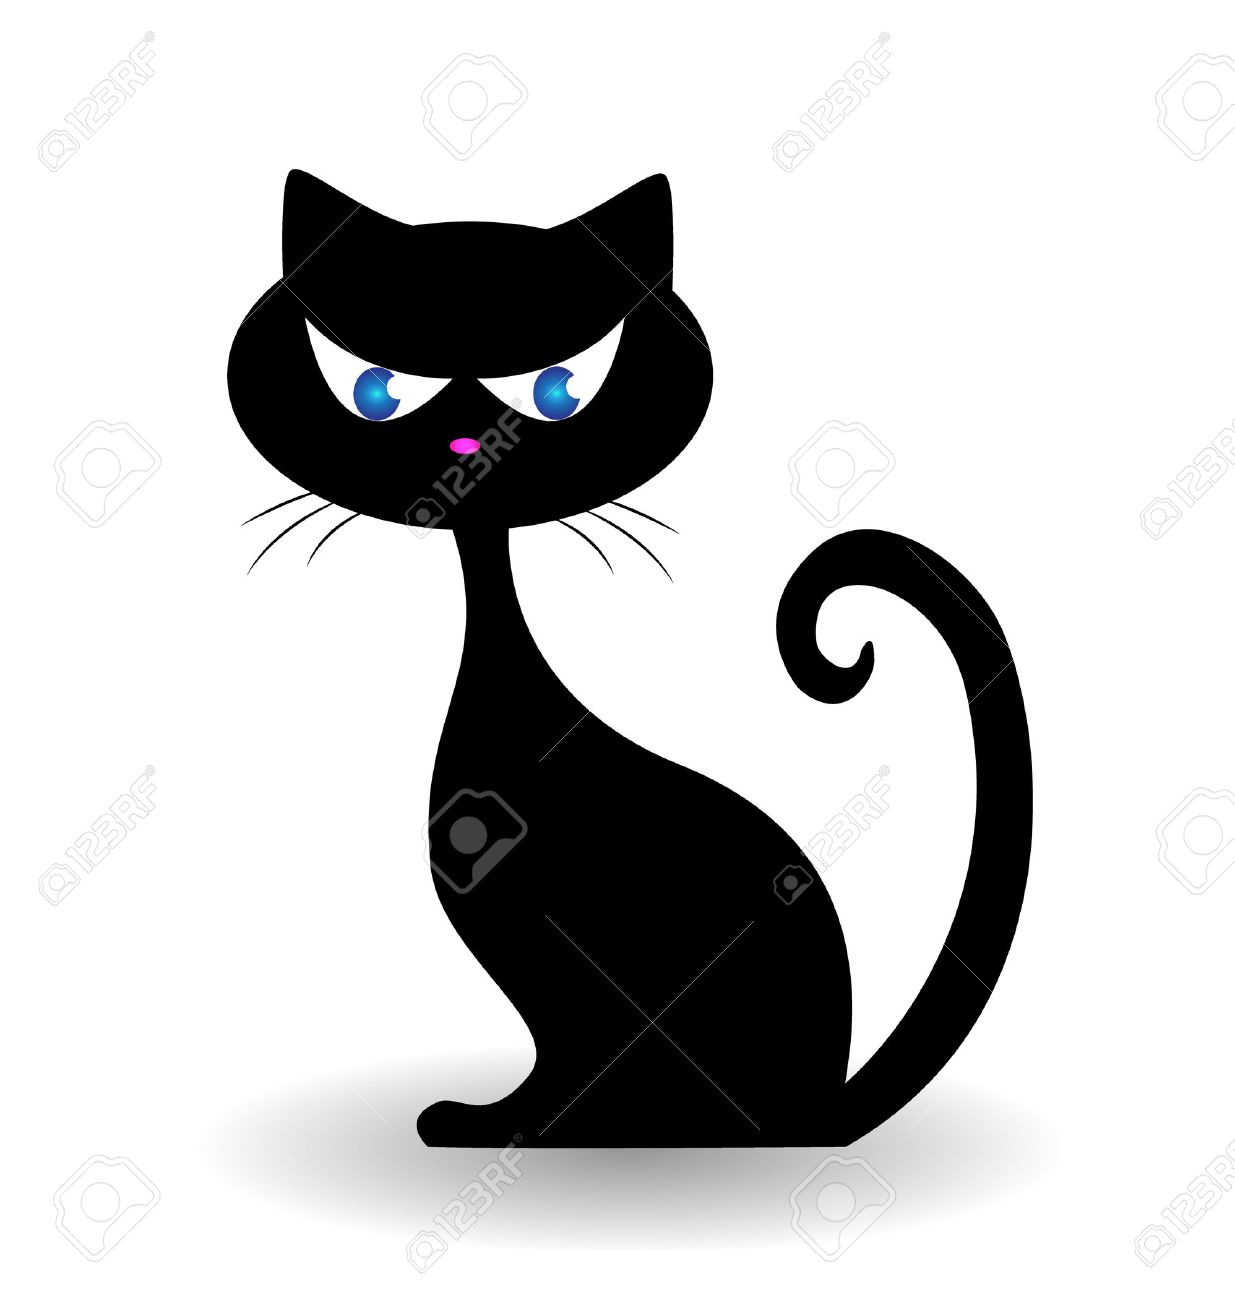 black cat icon illustration stock vector 22527575 - Black Cat Silhouette Halloween